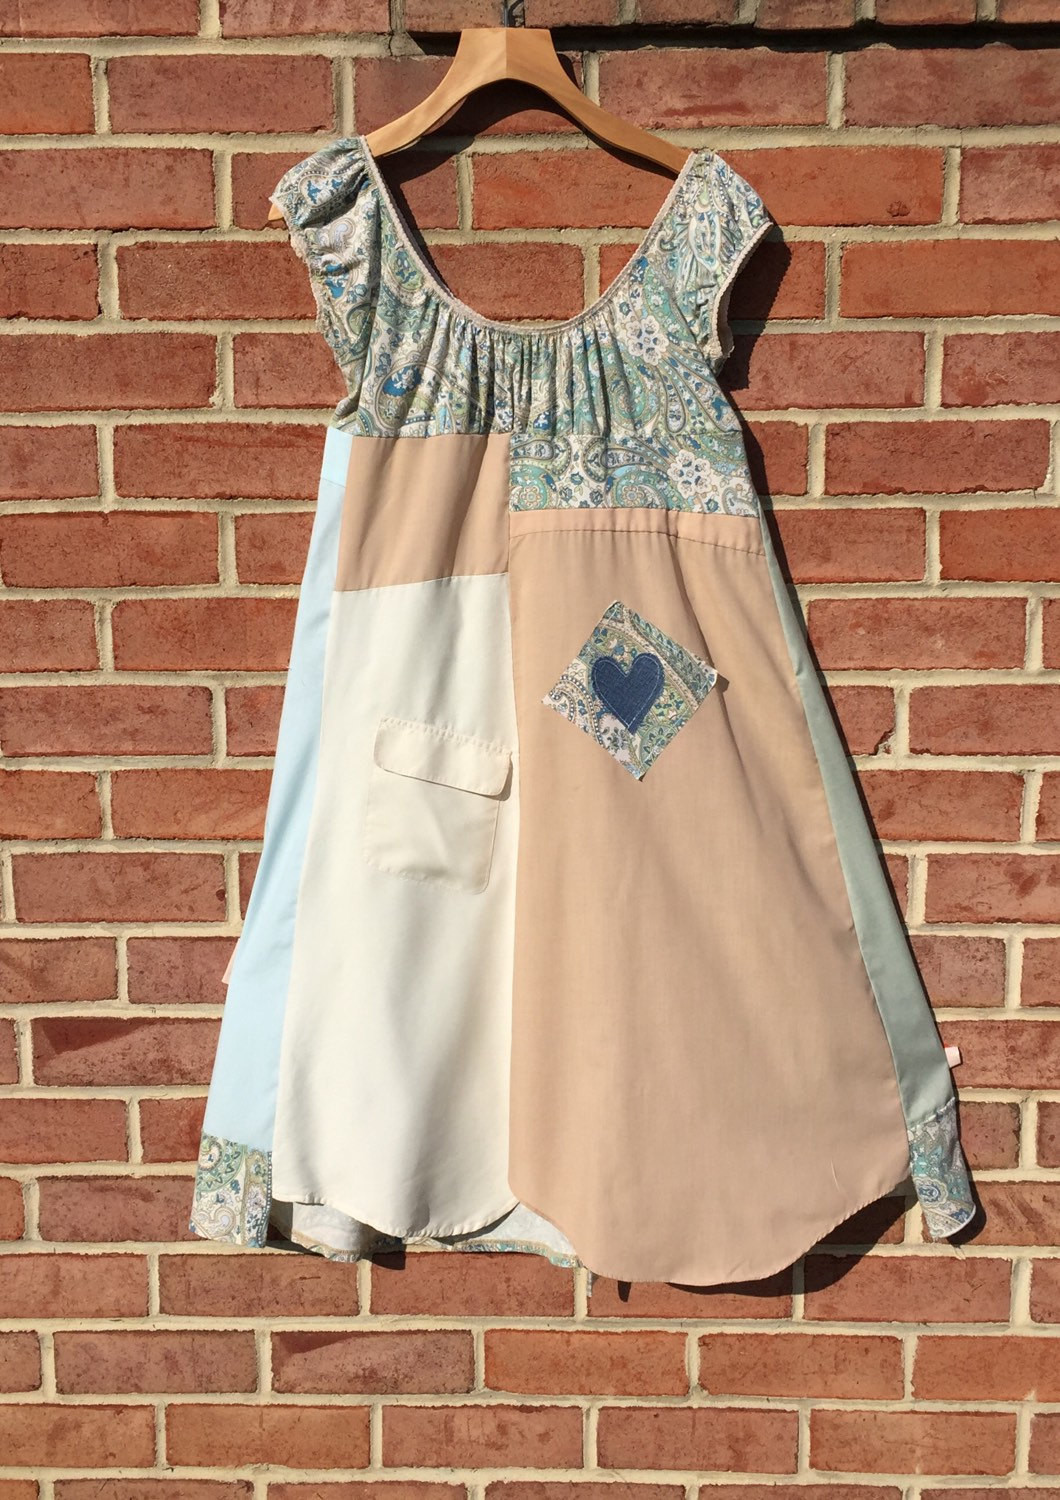 Best ideas about Shabby Chic Clothing . Save or Pin SALE Upcycled clothing shabby chic paisley patchwork dress MED Now.